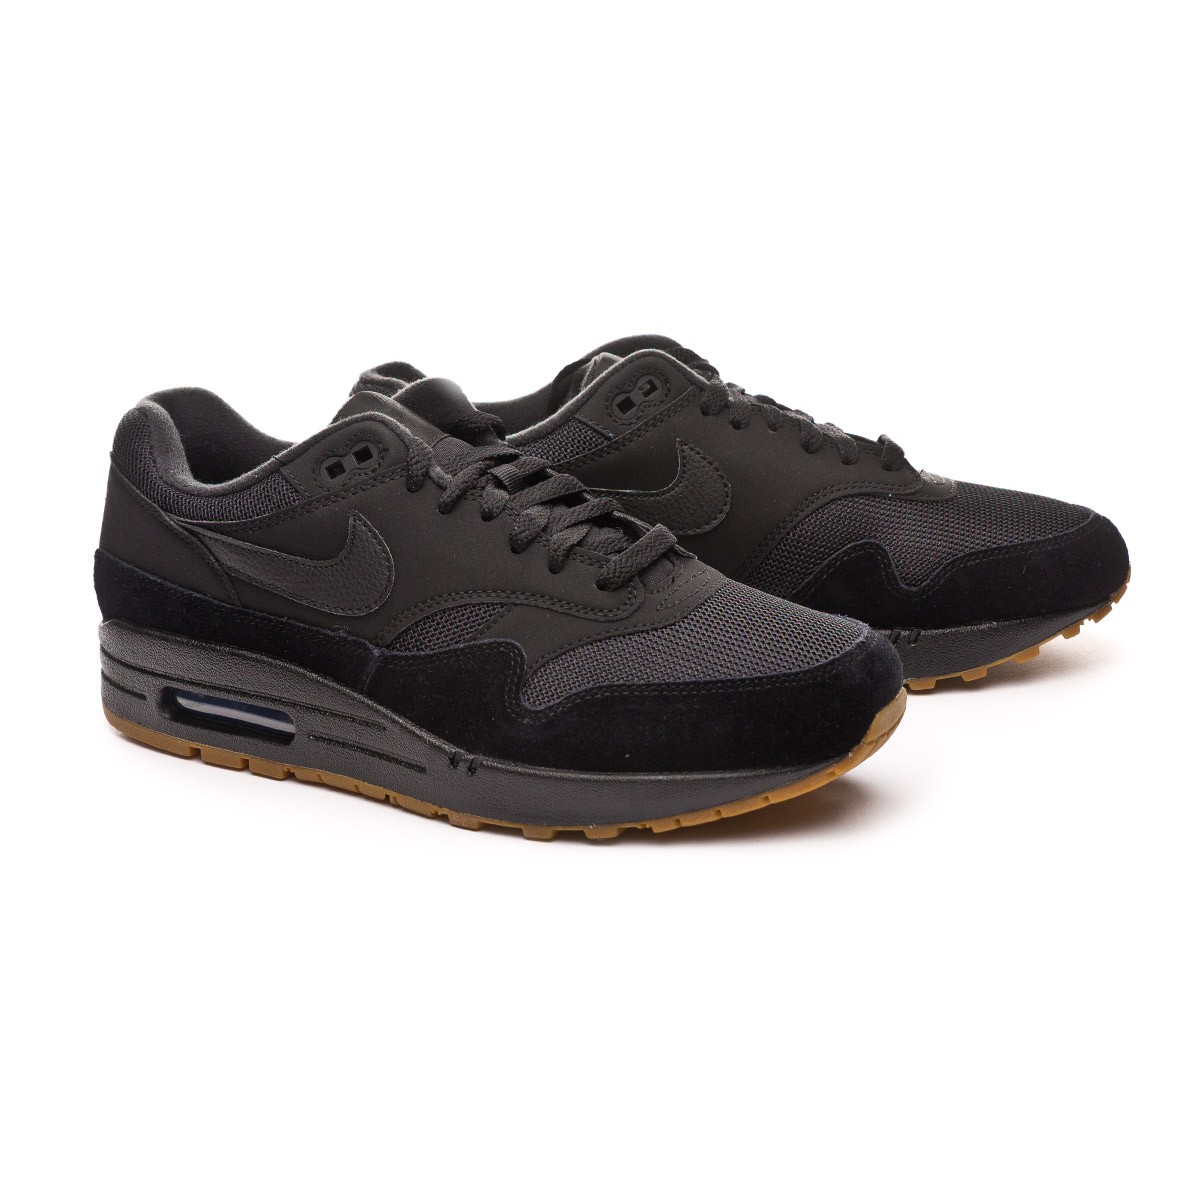 save off 77bea c07fe Trainers Nike Air Max 1 2019 Black-Gum med brown - Tienda de fútbol Fútbol  Emotion